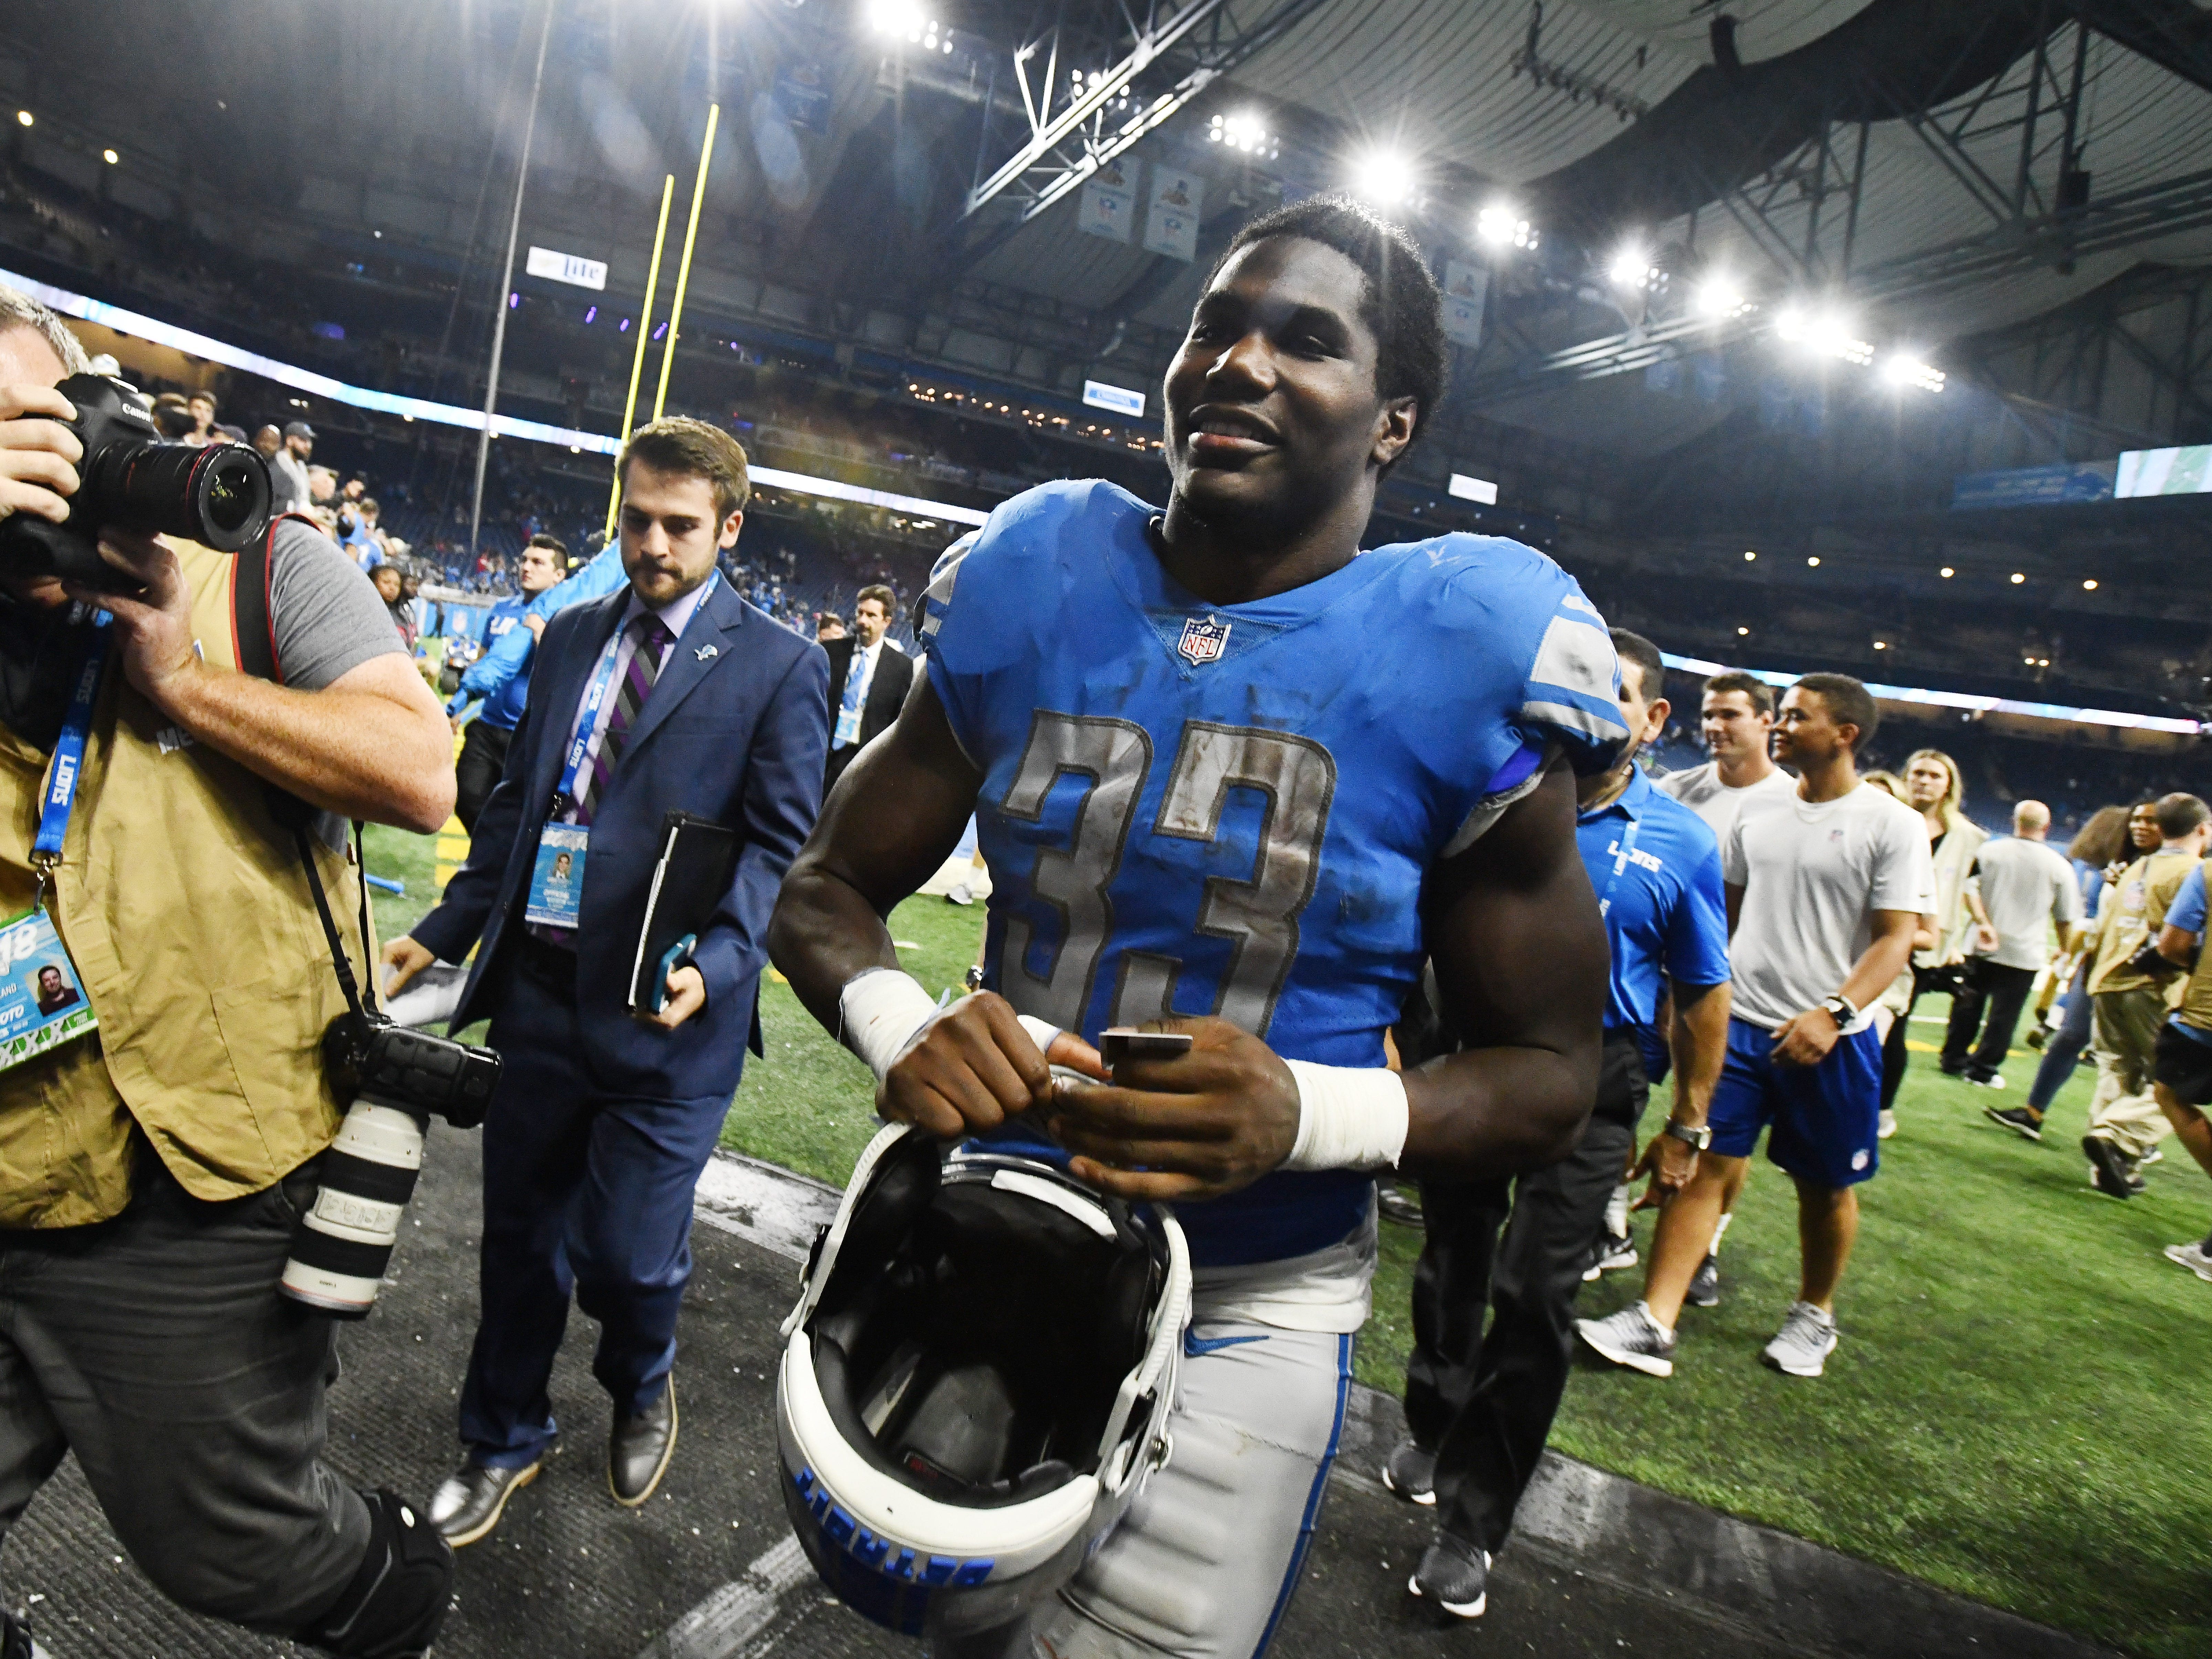 Lions running back Kerryon Johnson, leaving the field, ends Detroit Lions 100-yard rusher drought at 70 games in the 26-10 victory over the Patriots.